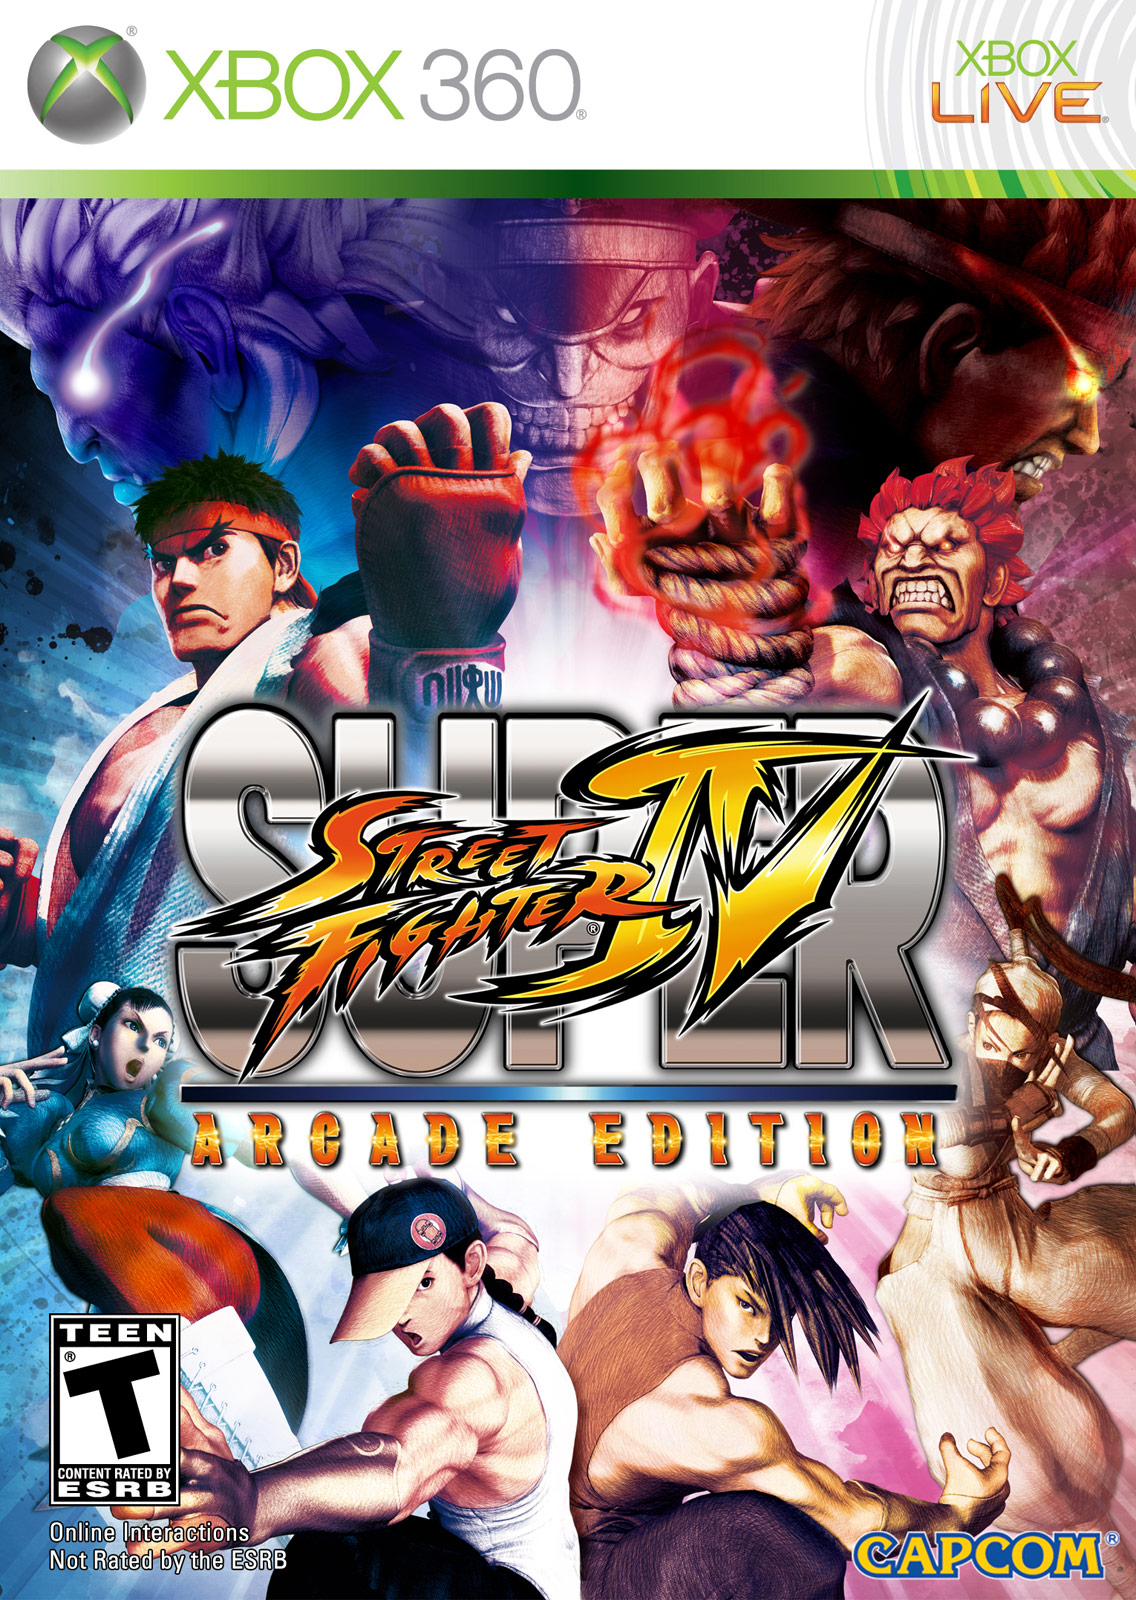 Super Street Fighter 4 Arcade Edition image #1